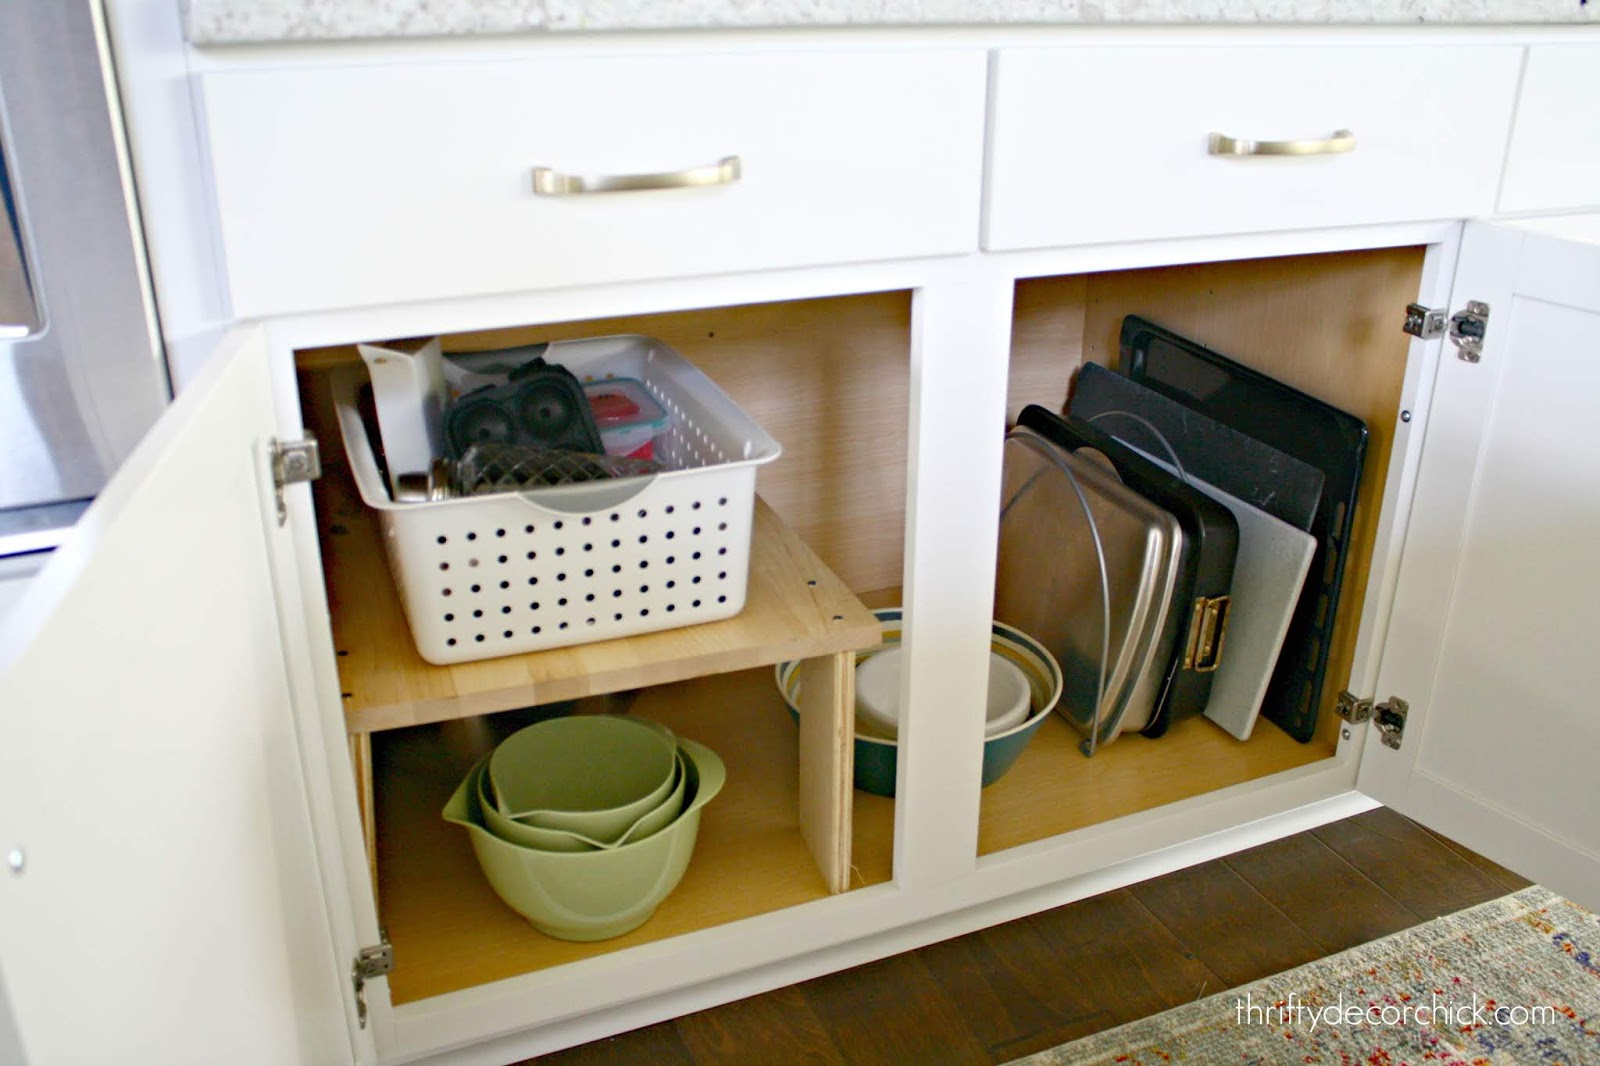 DIY hacks to get more usable space out of cabinets